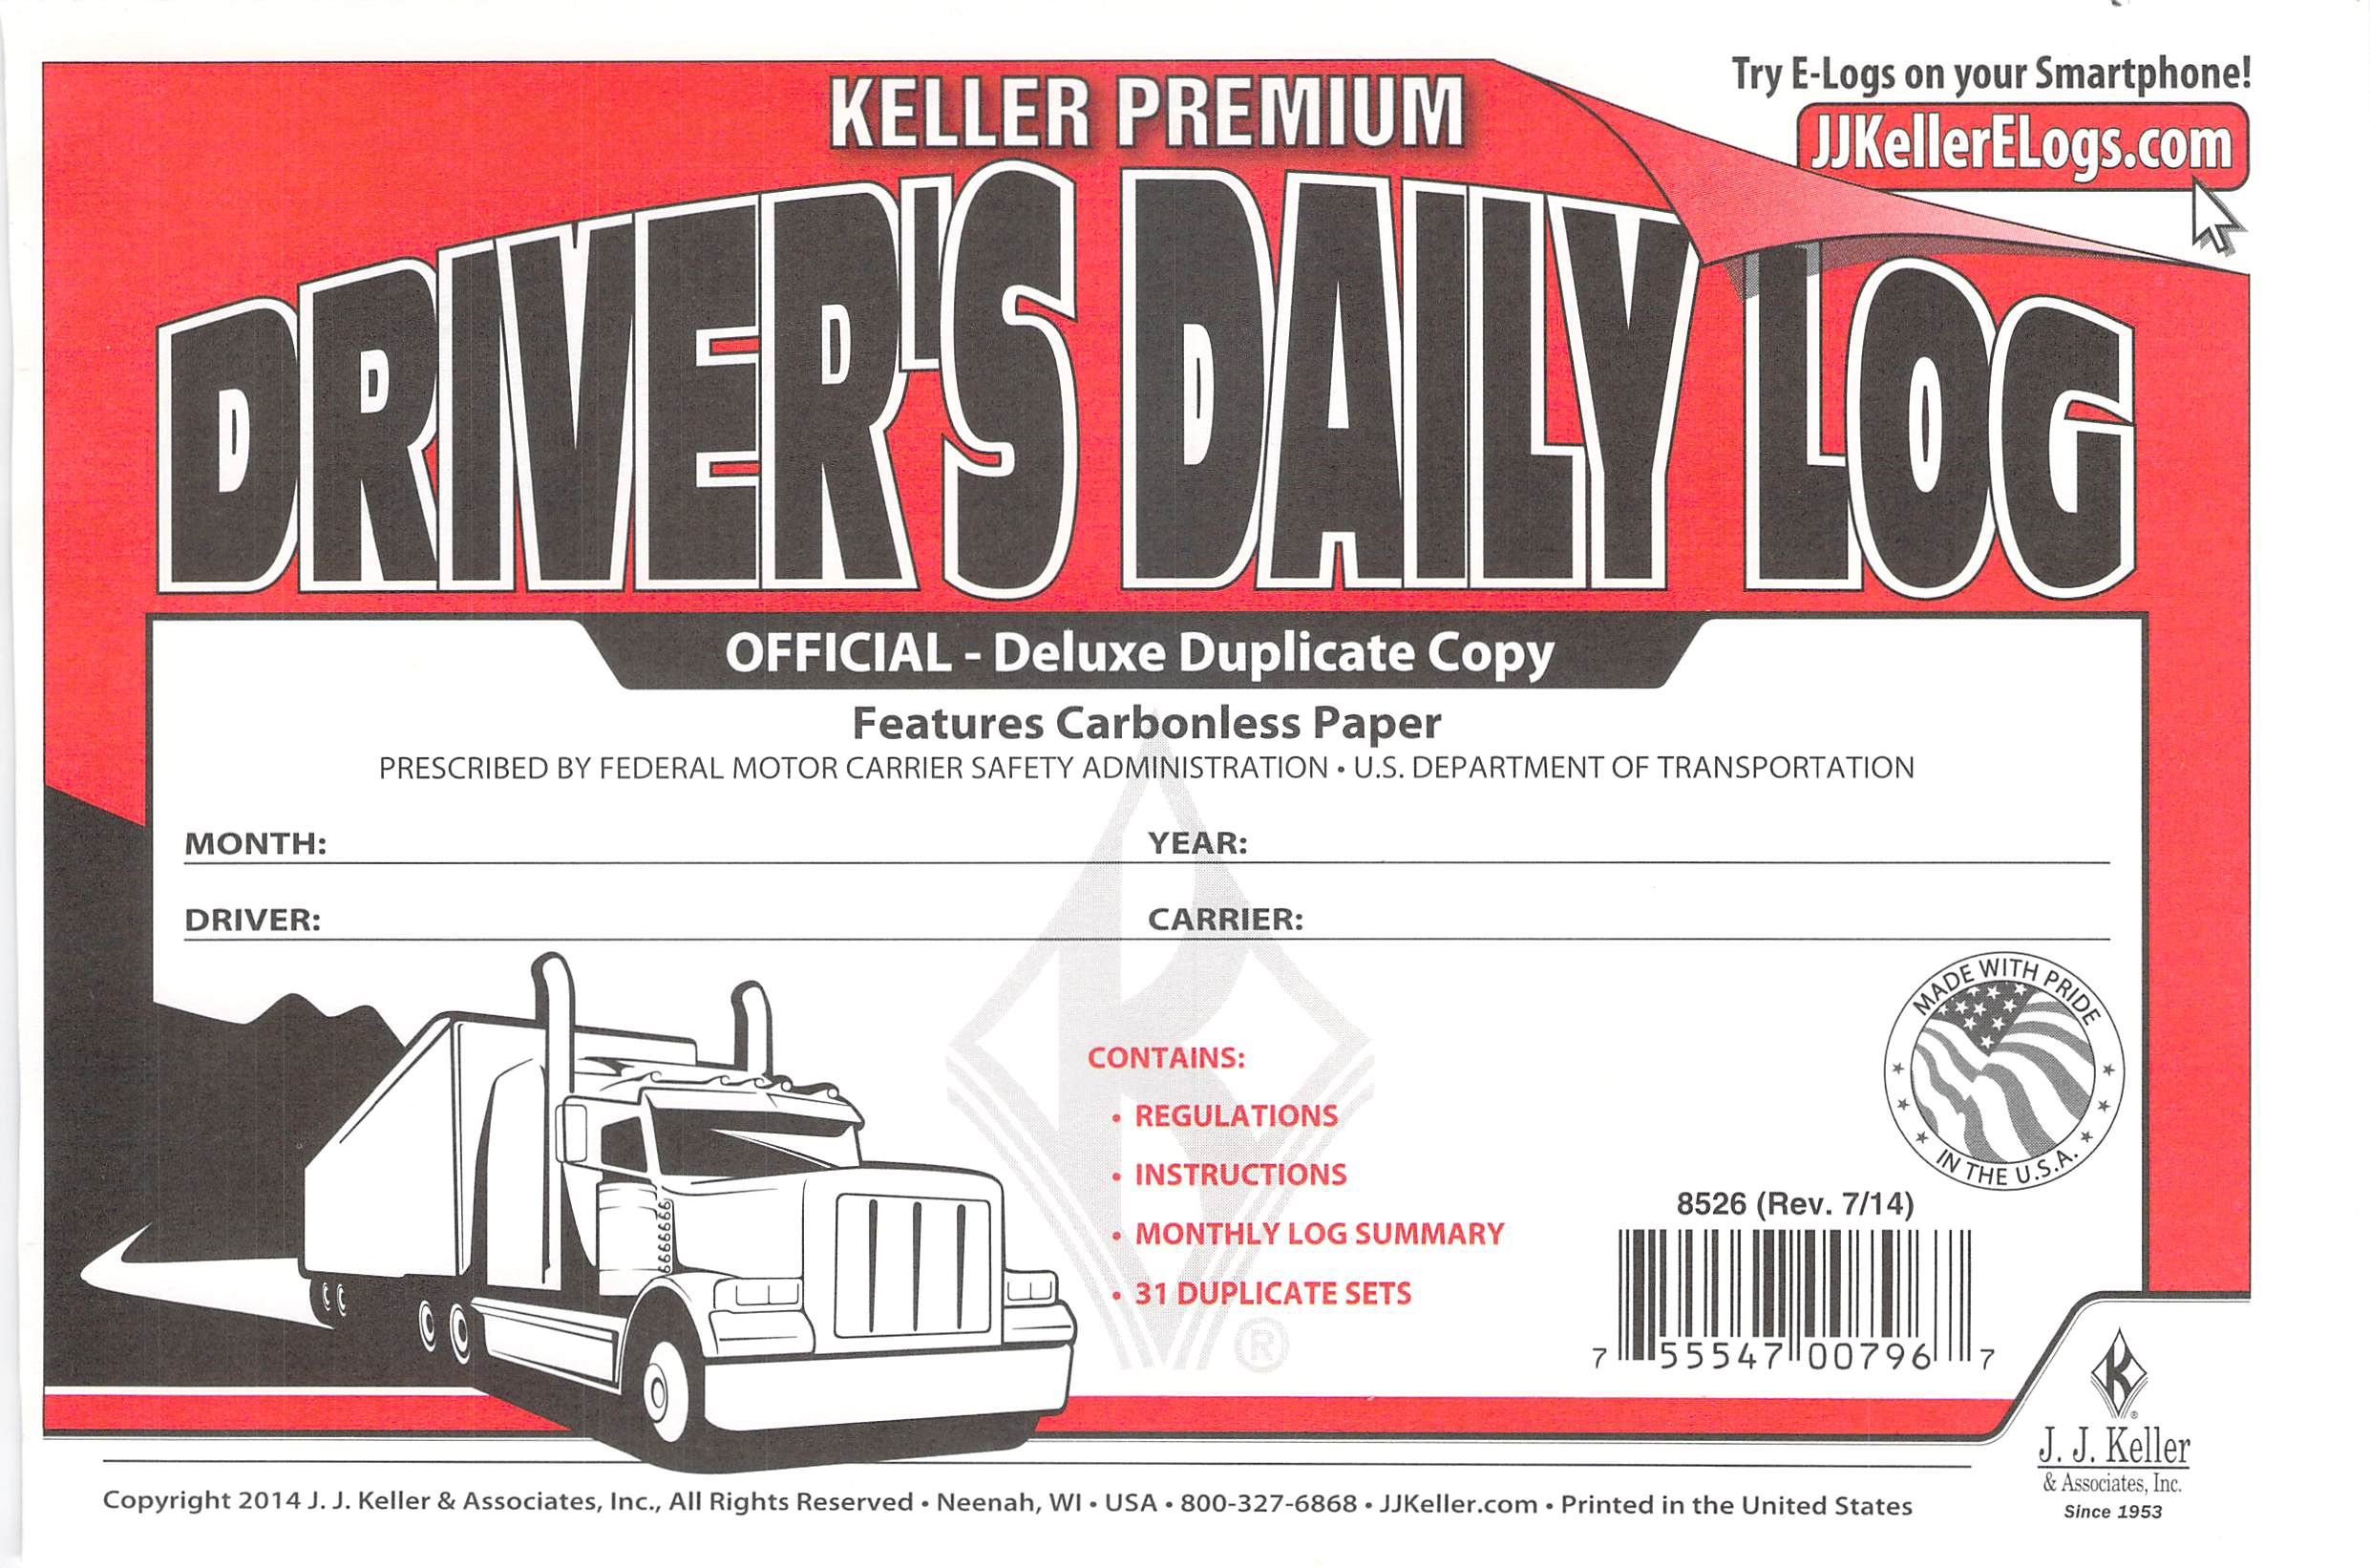 J.J. Keller 8526 701L Duplicate Copy Driver's Daily Log Book Carbonless -100 Pack by J.J. Keller